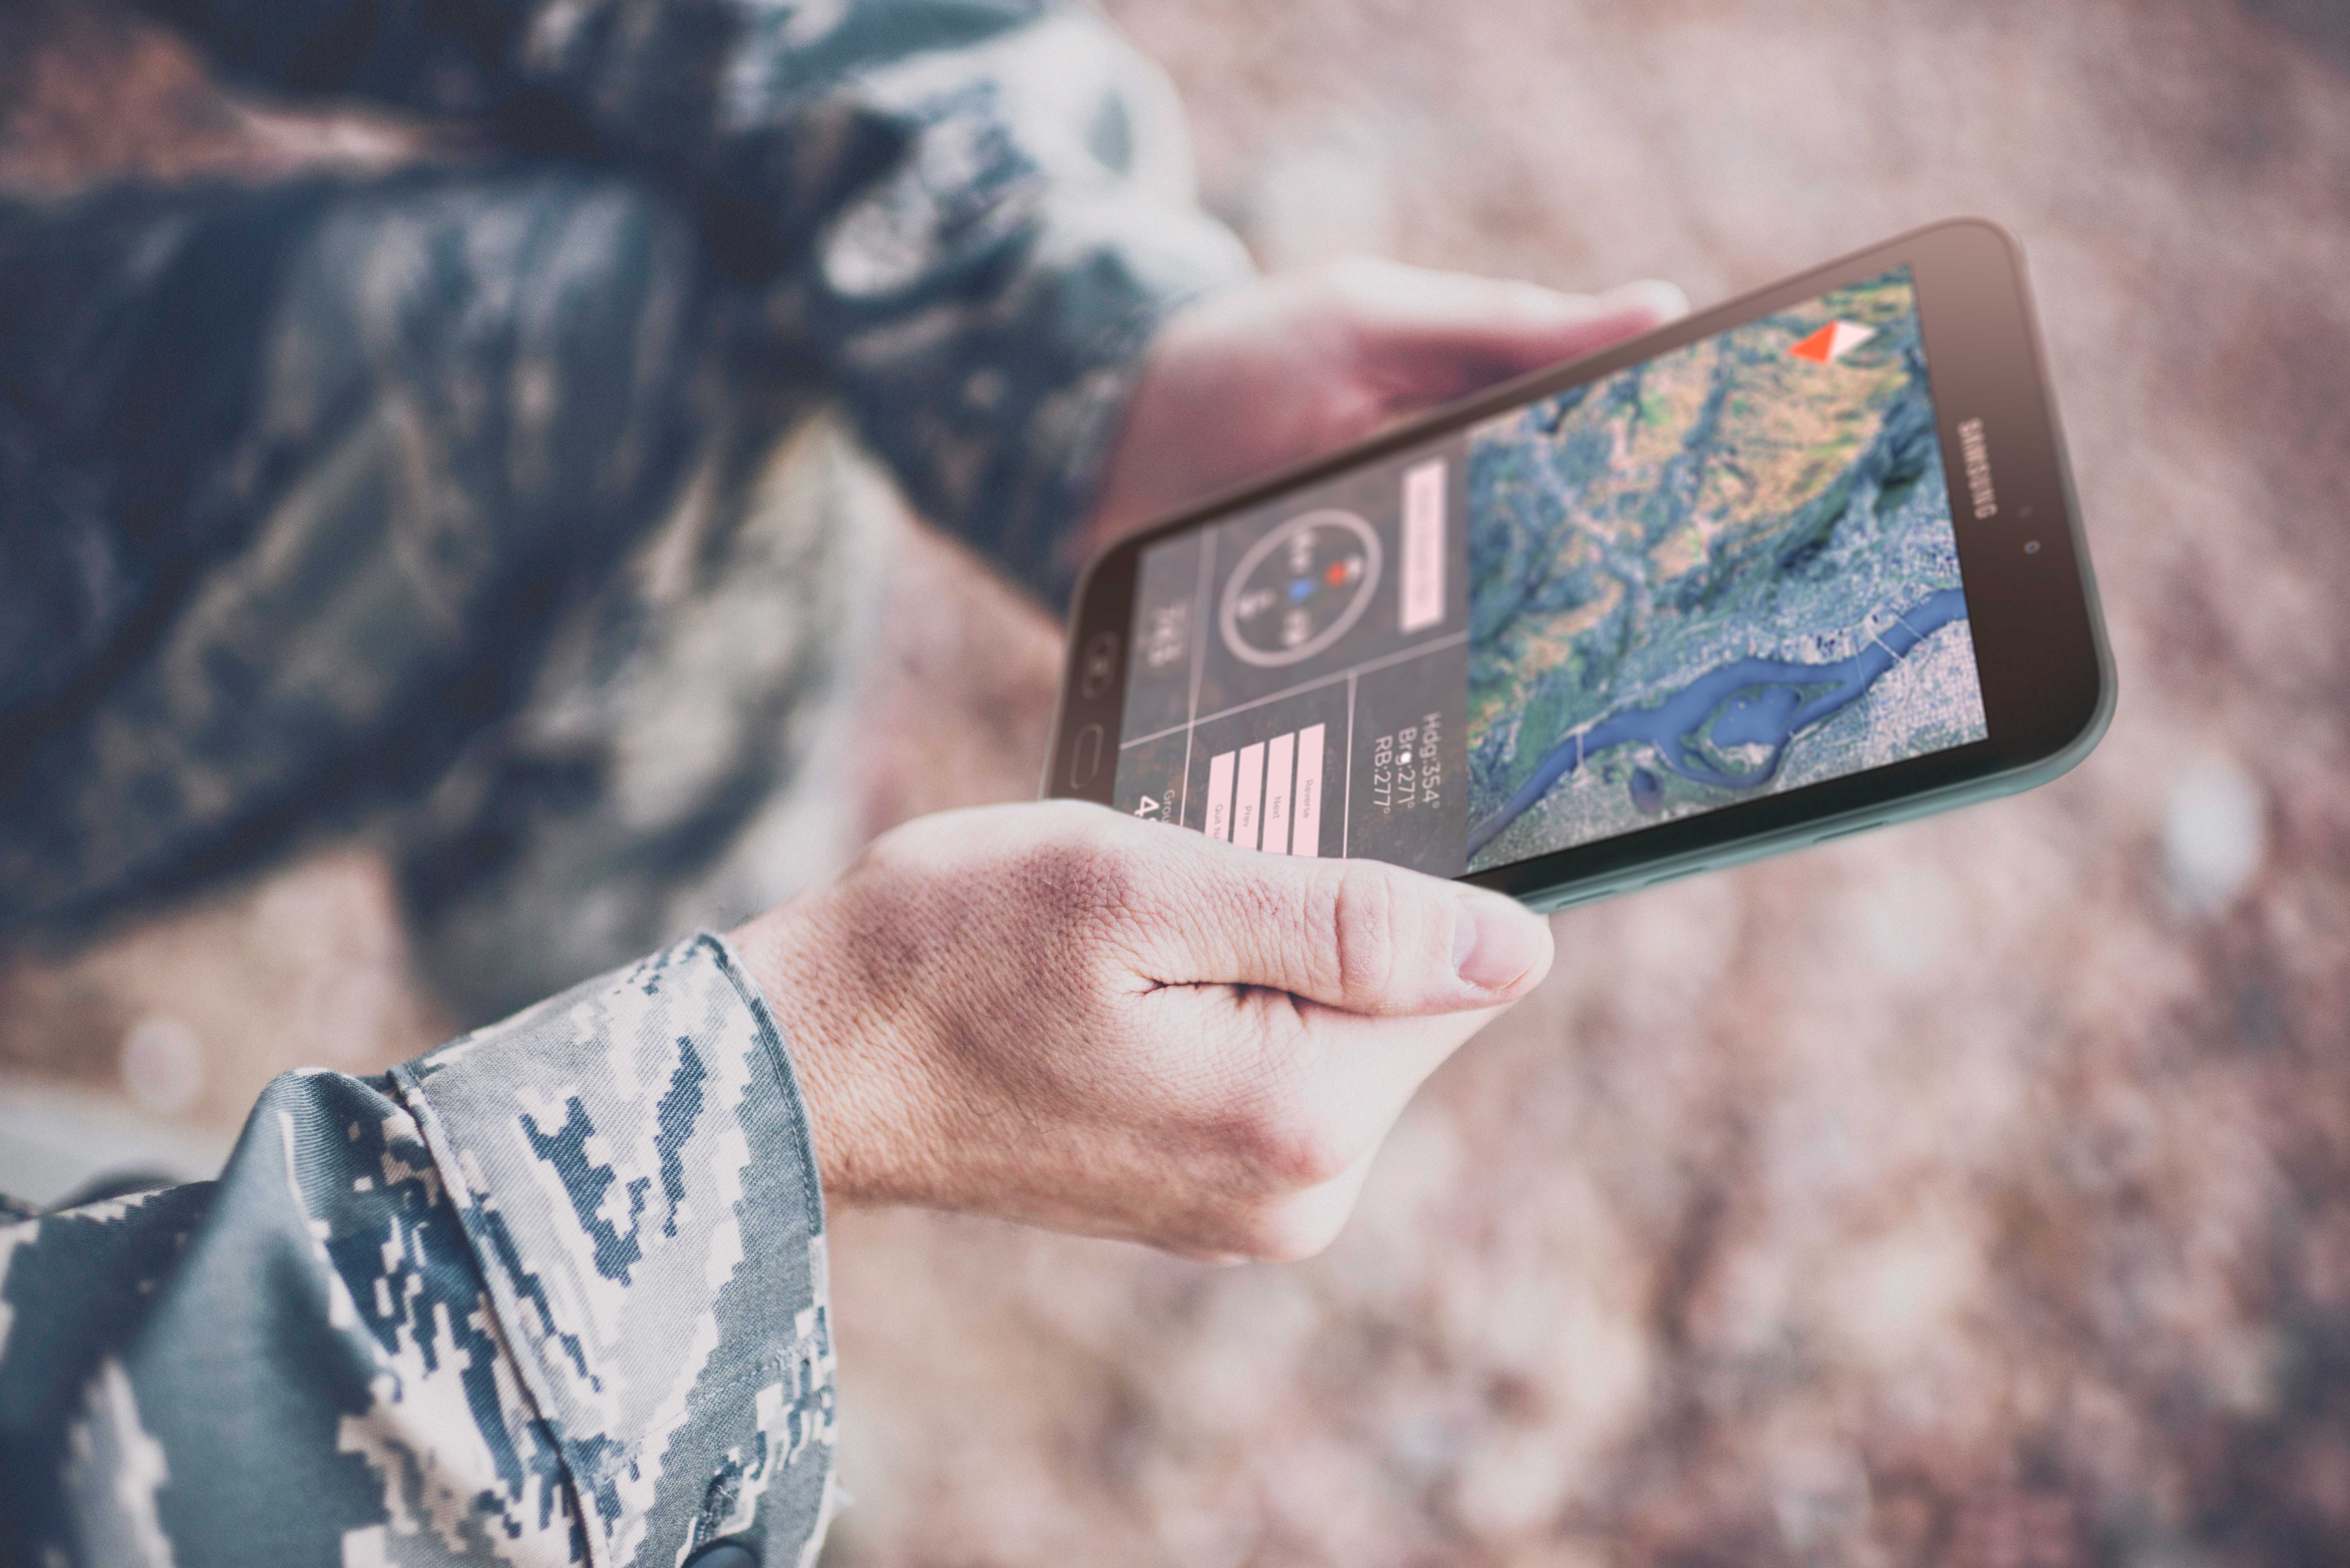 517 Mobility Support Advisory Squadron Suitable for Any Mobile Phone Three in One Data Line